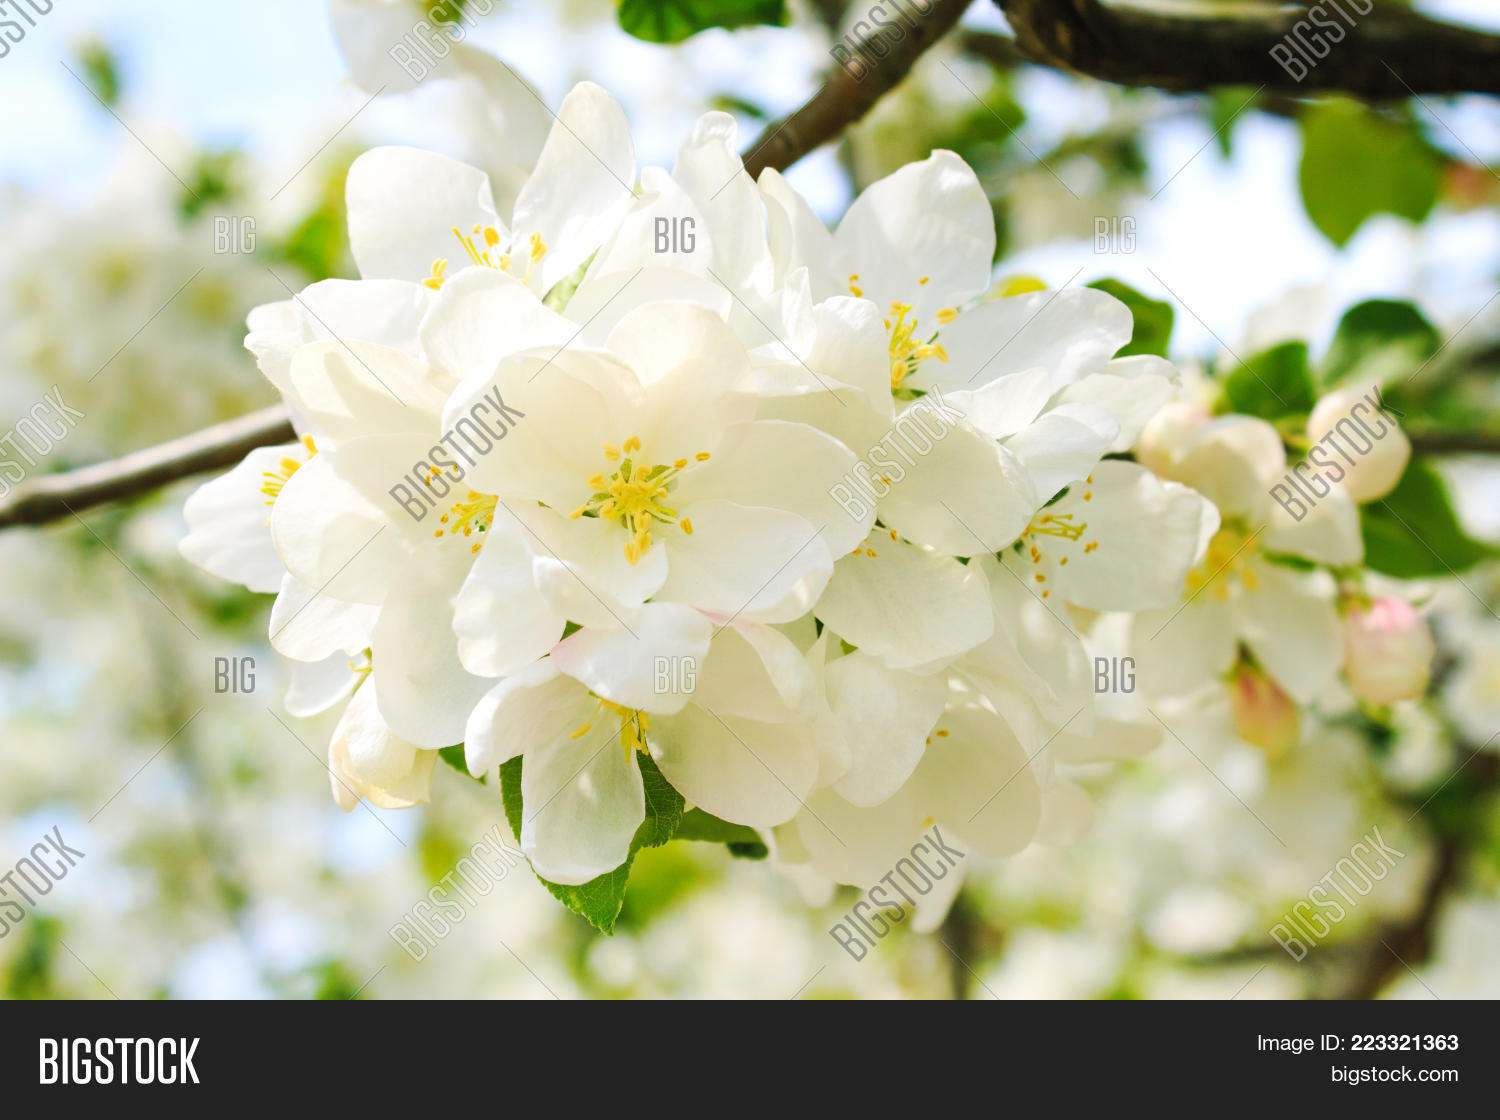 Large White Flowers On Image Photo Free Trial Bigstock